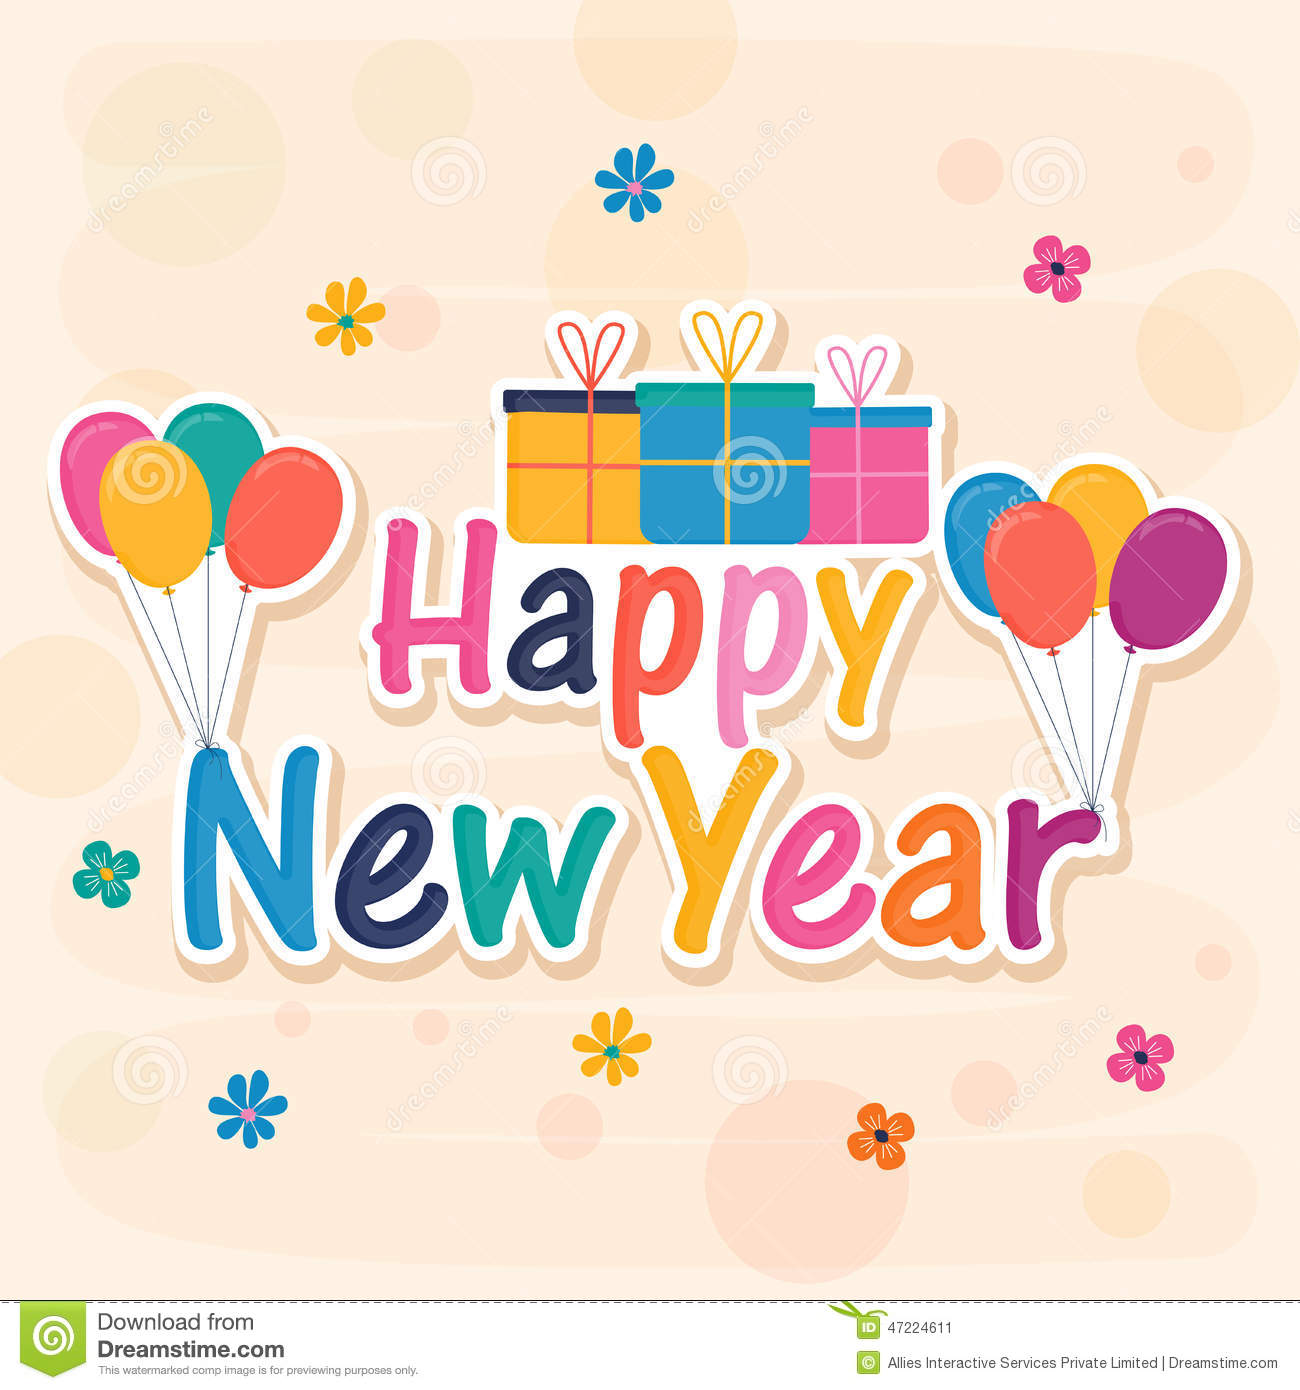 poster or banner for happy new year